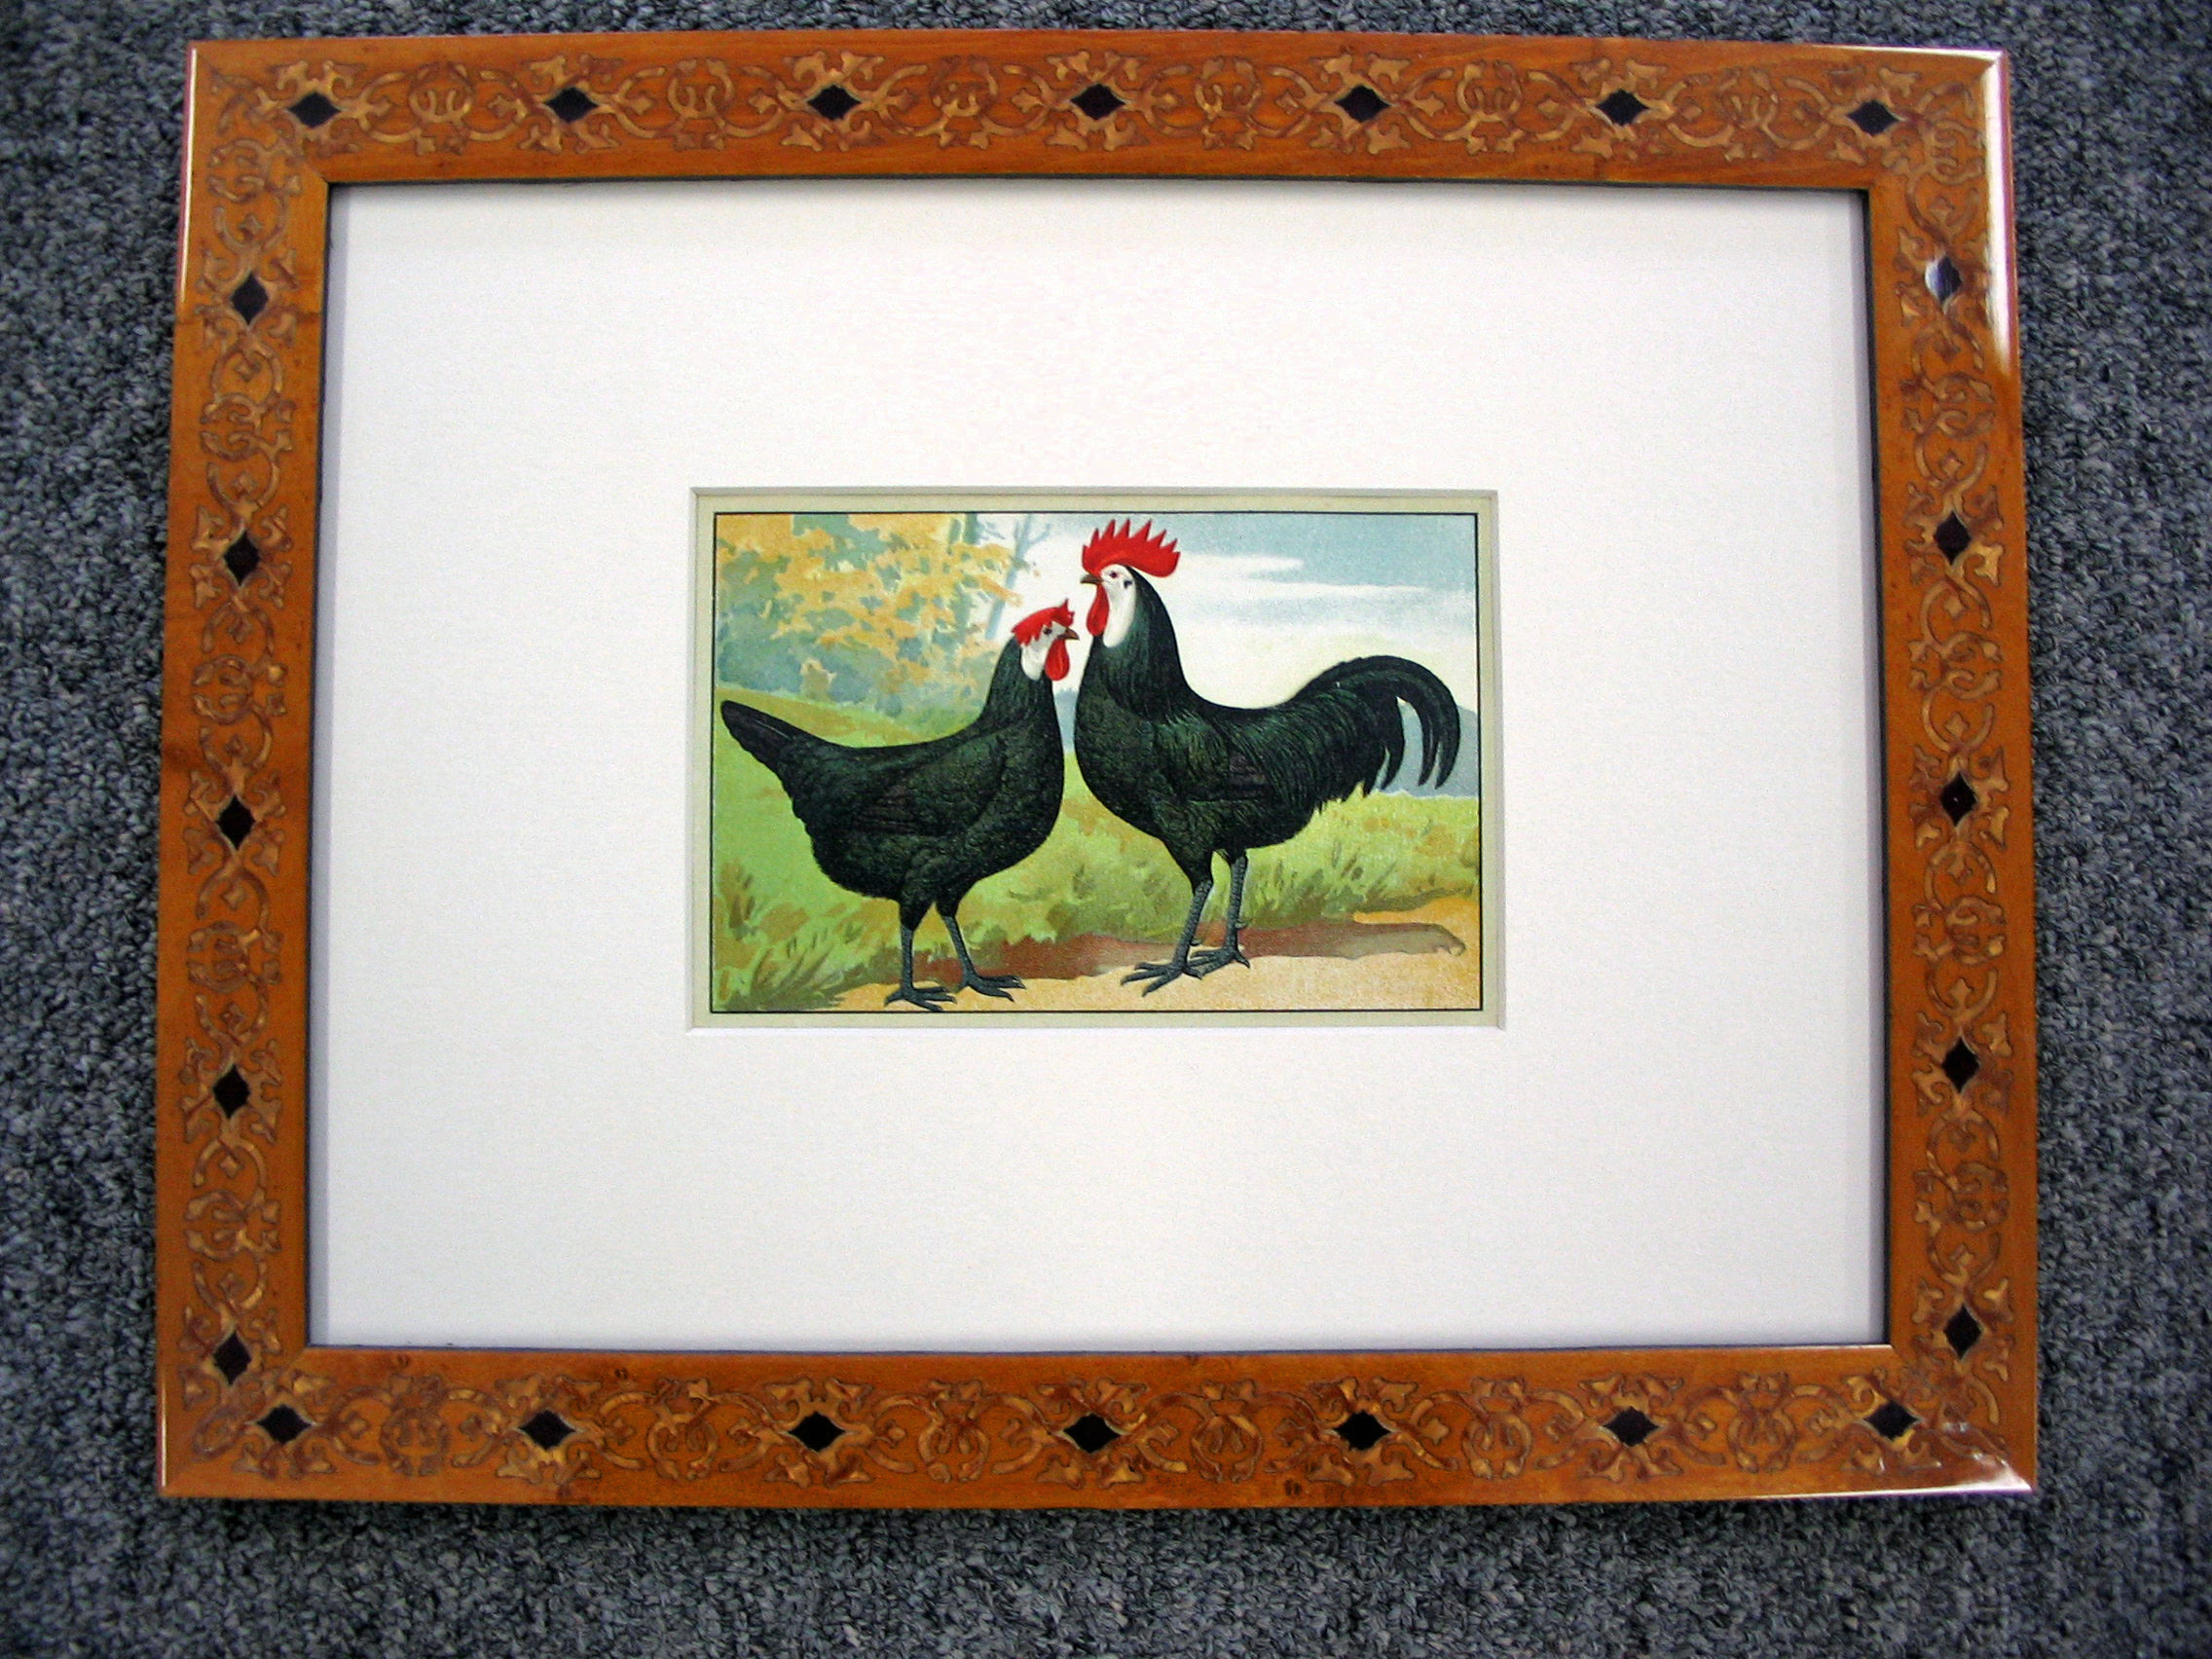 Rooster framed by The Framemakers